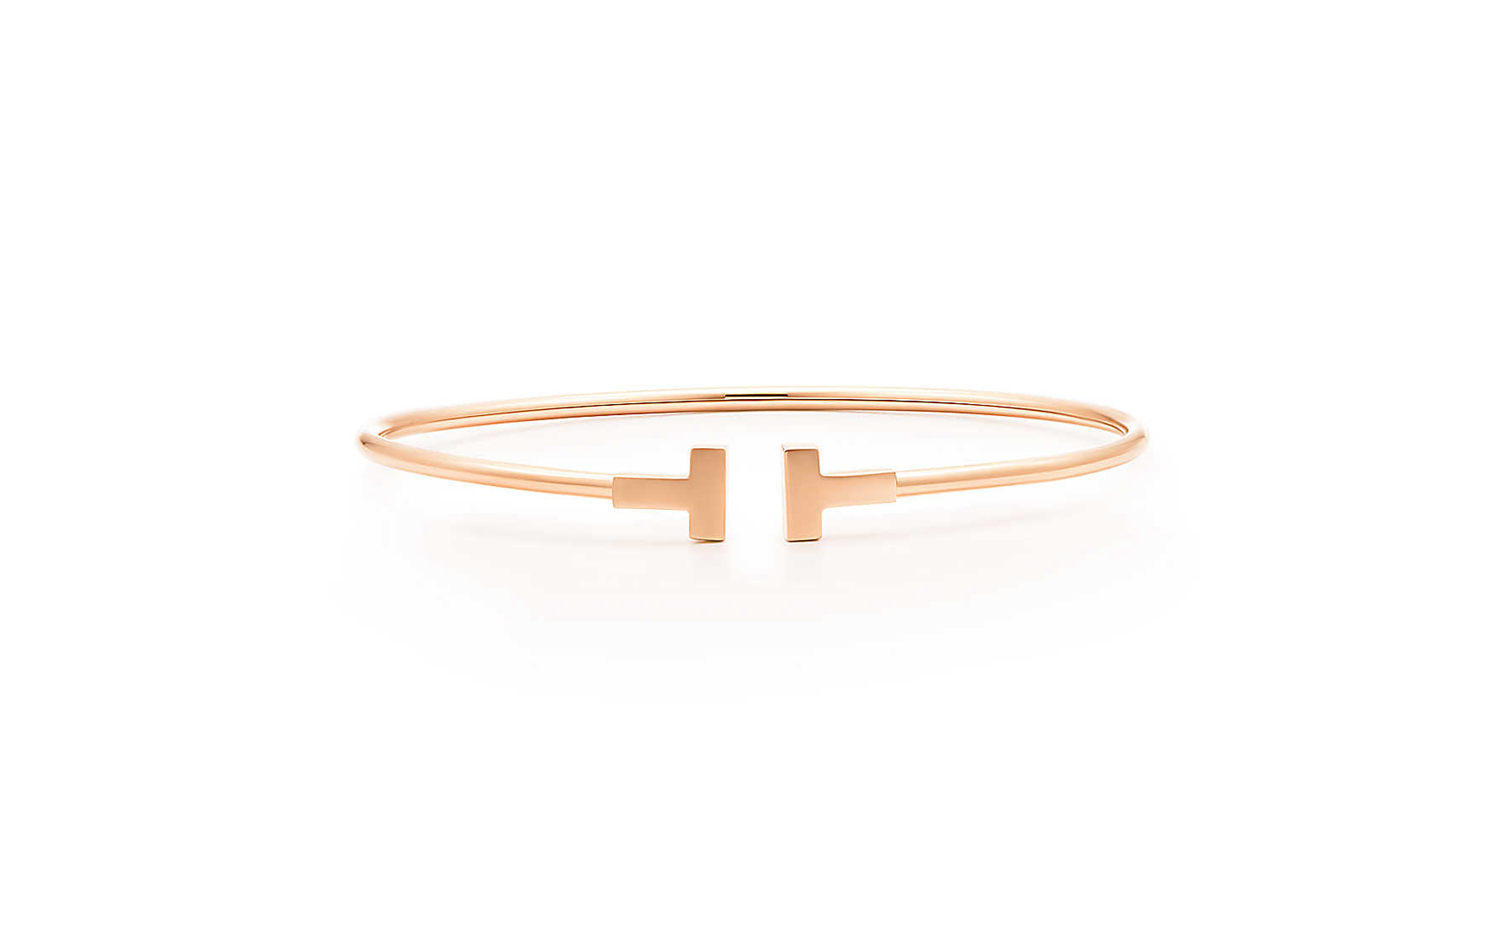 Tiffany T Narrow Wire Bracelet in Rose Gold